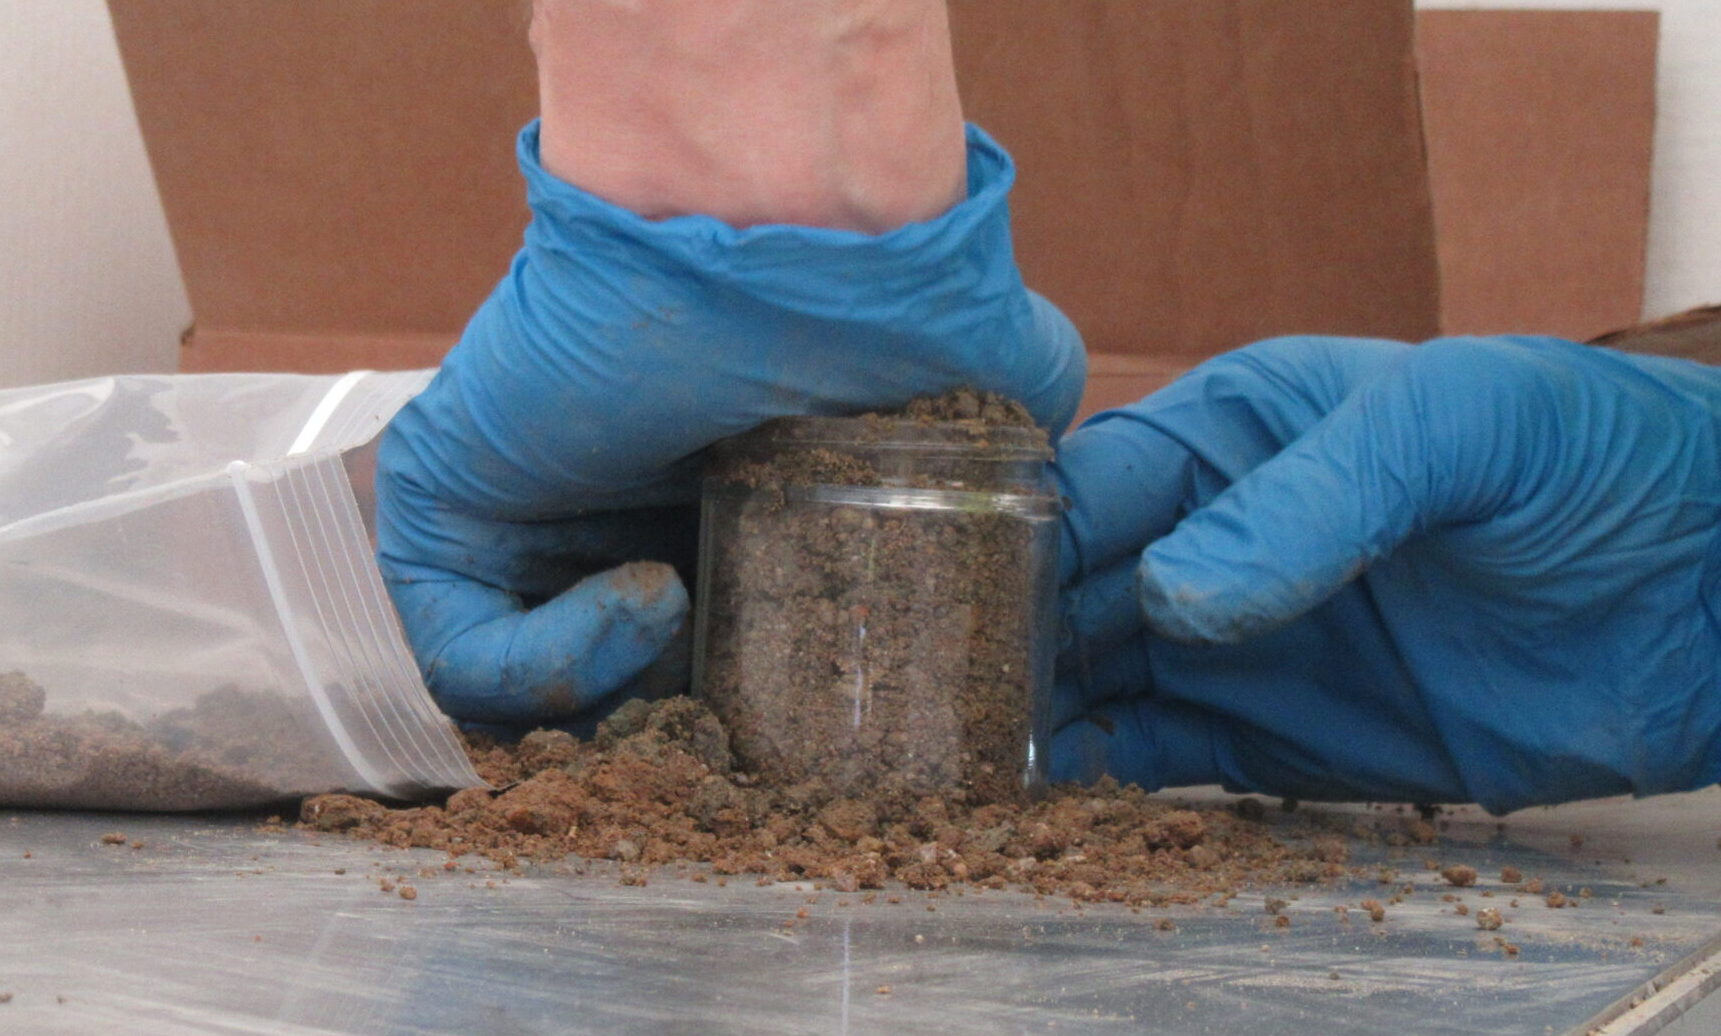 Blue latex gloved hands pushing down soil in a clear, glass container